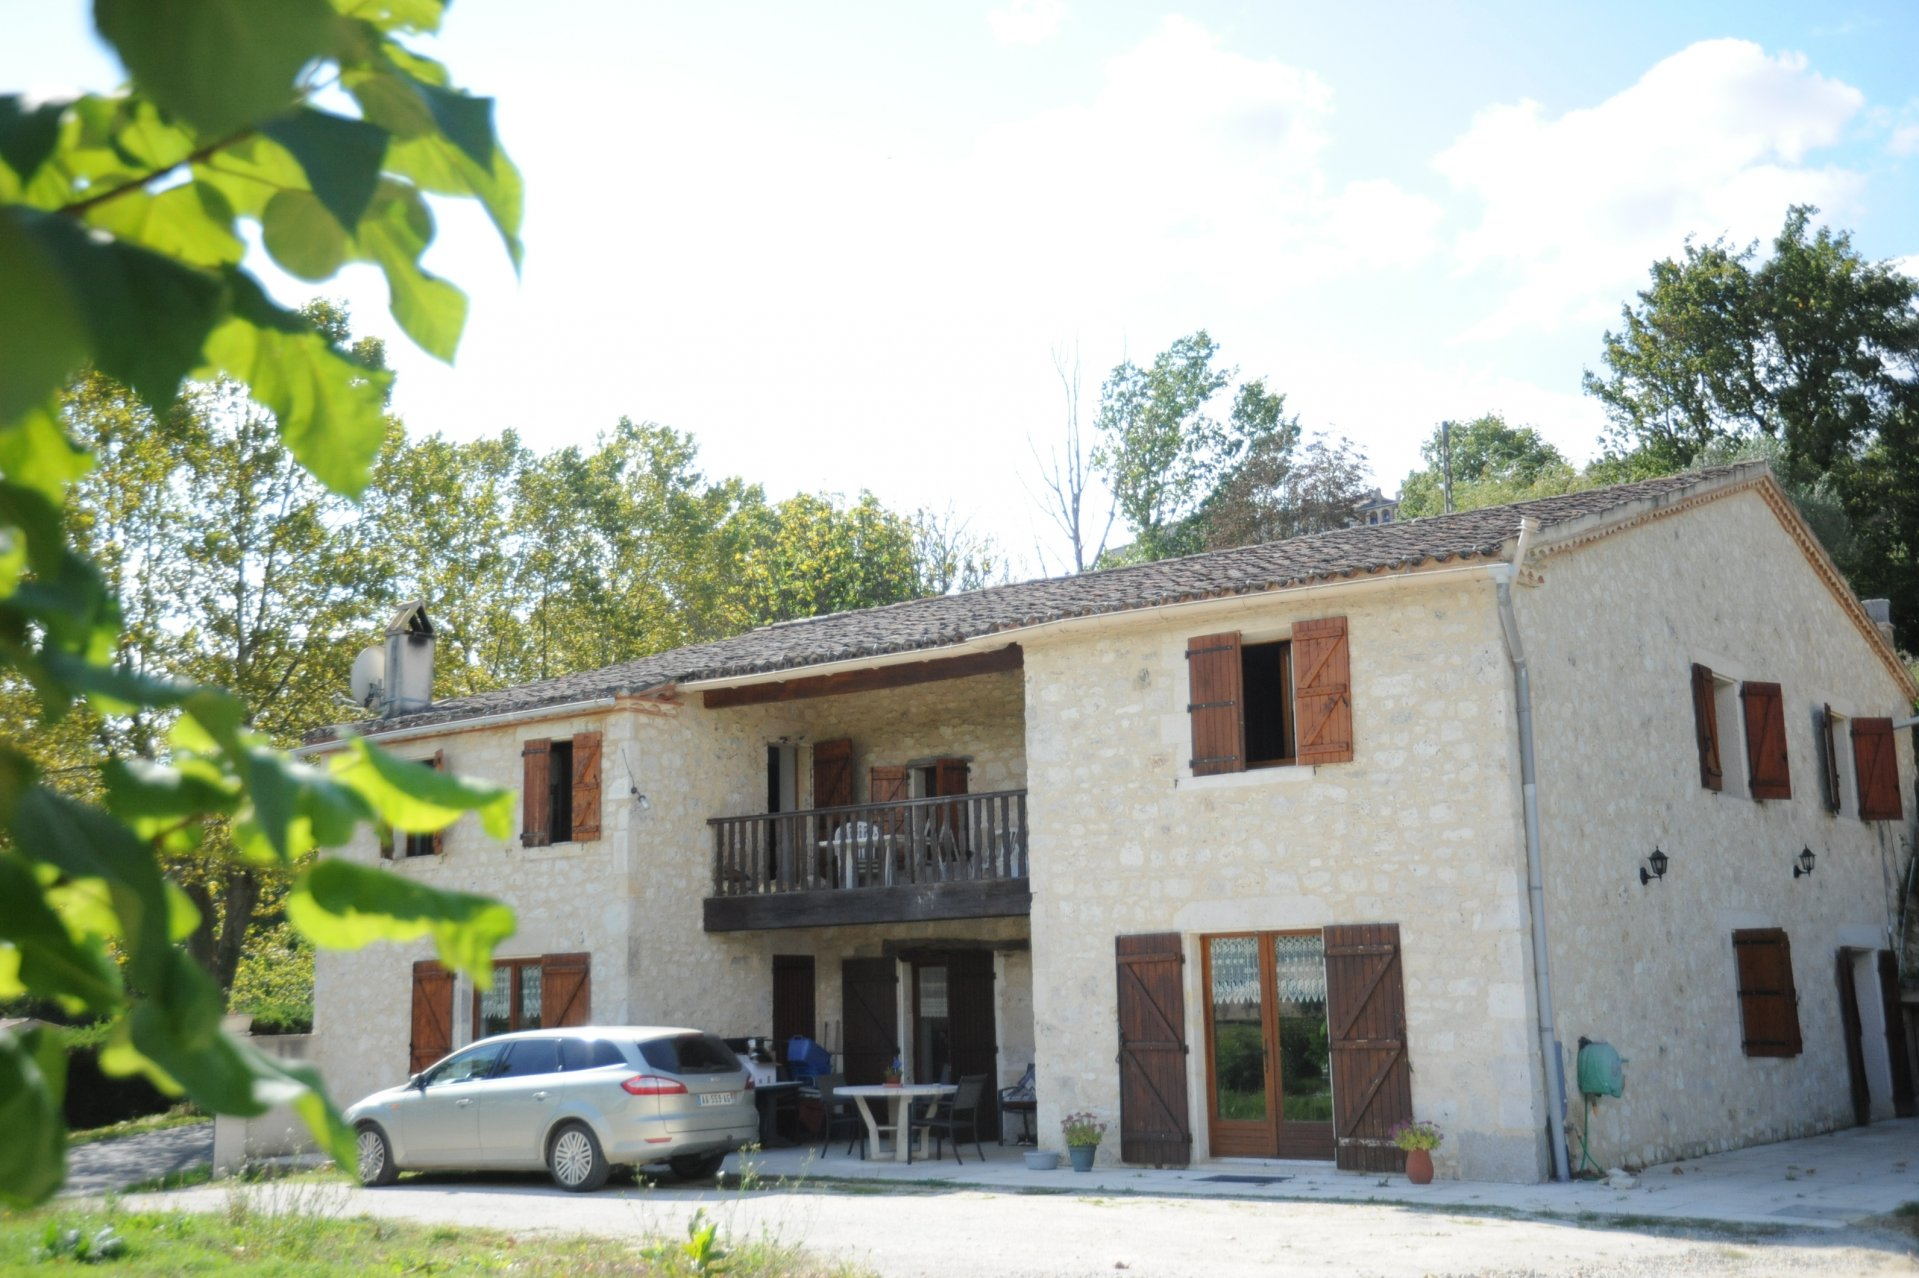 Attractive stone built house on the edge of a lively bastide town